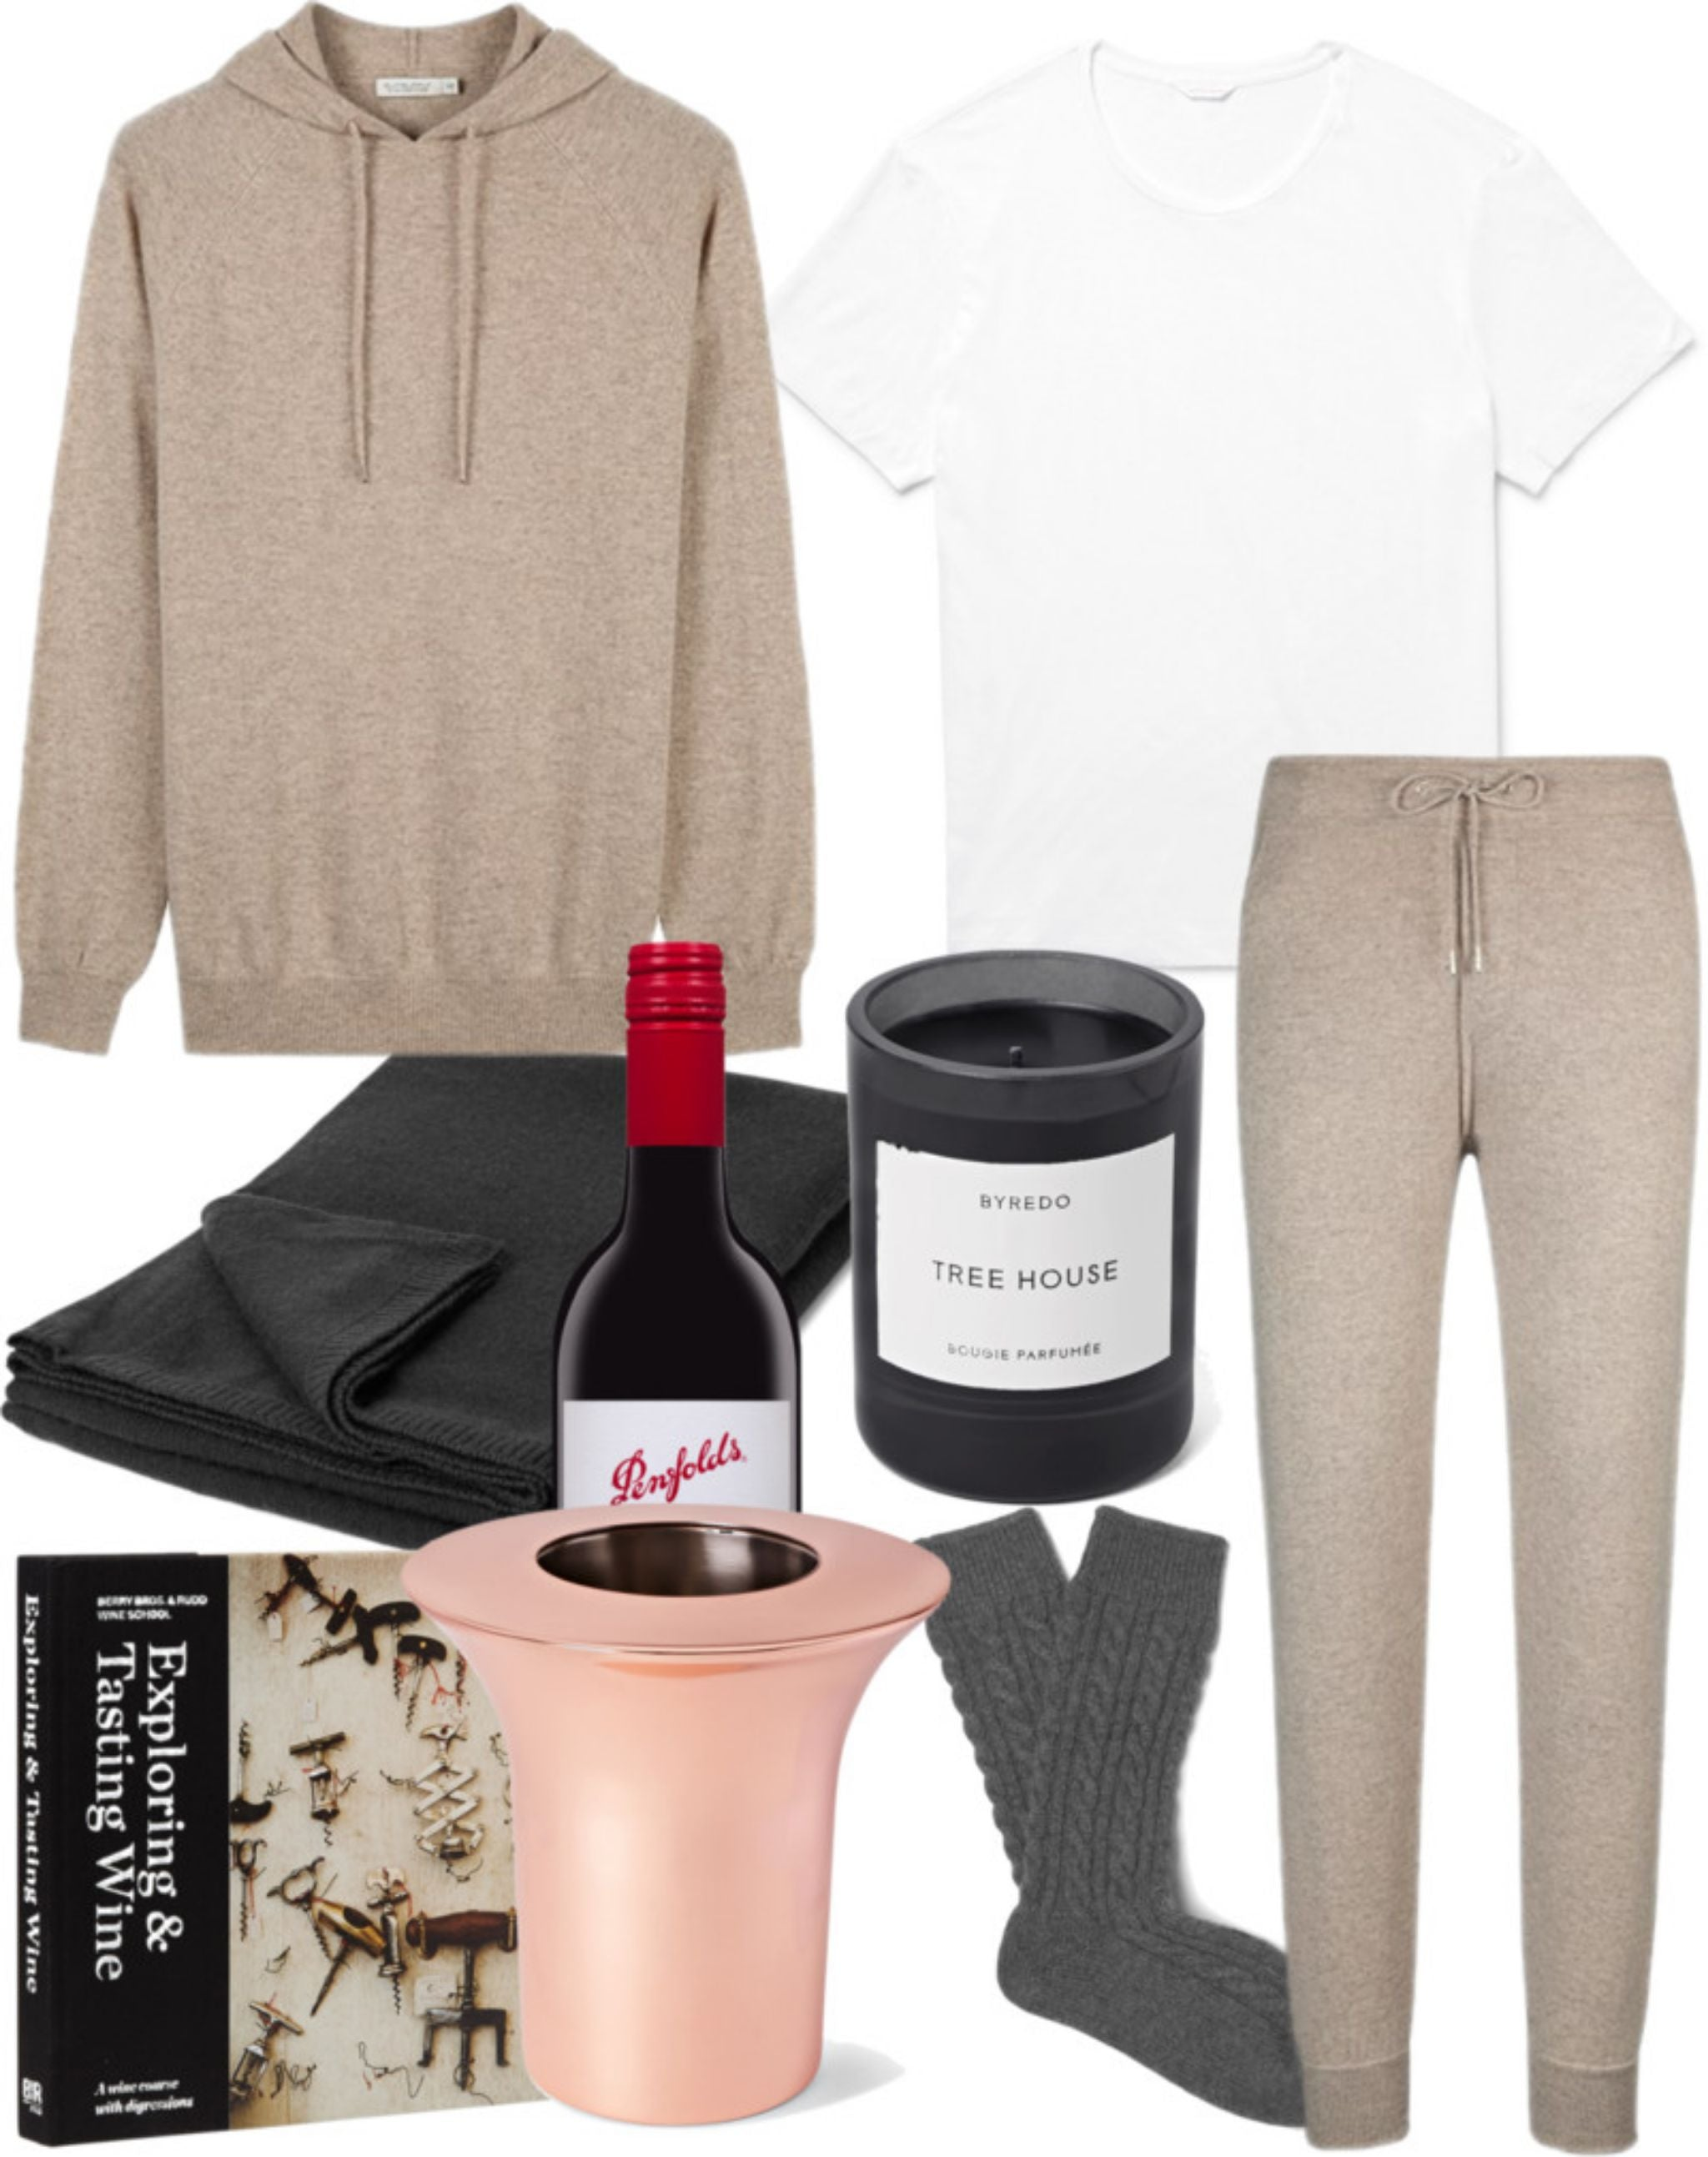 what-to-wear-on-new-years-eve-mens-casual-attire-home-cashmere-sweater